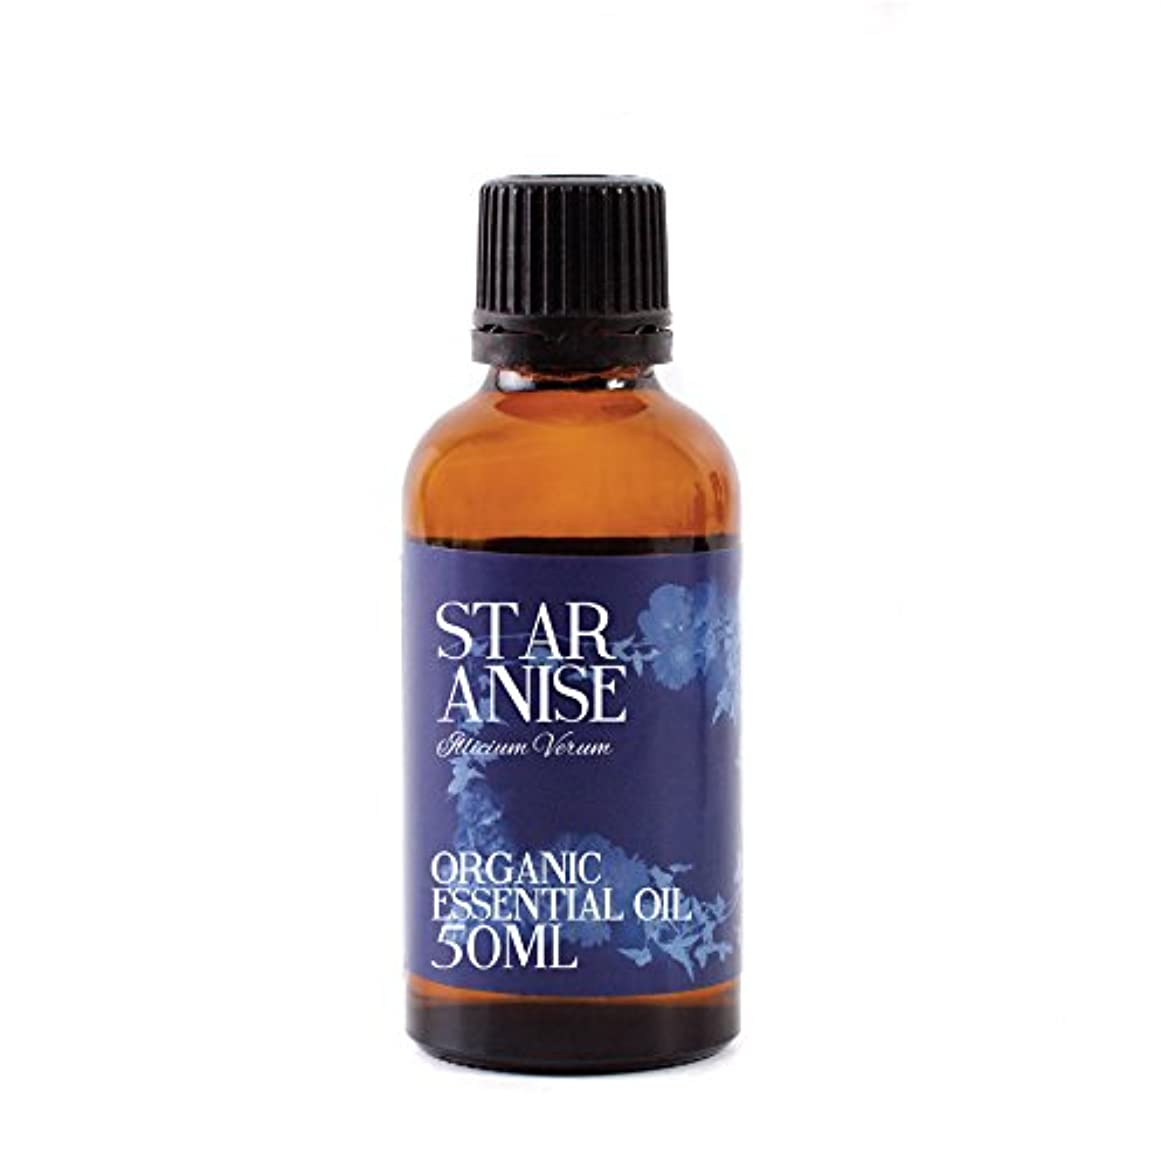 形状農民ドライブMystic Moments | Star Anise Organic Essential Oil - 50ml - 100% Pure